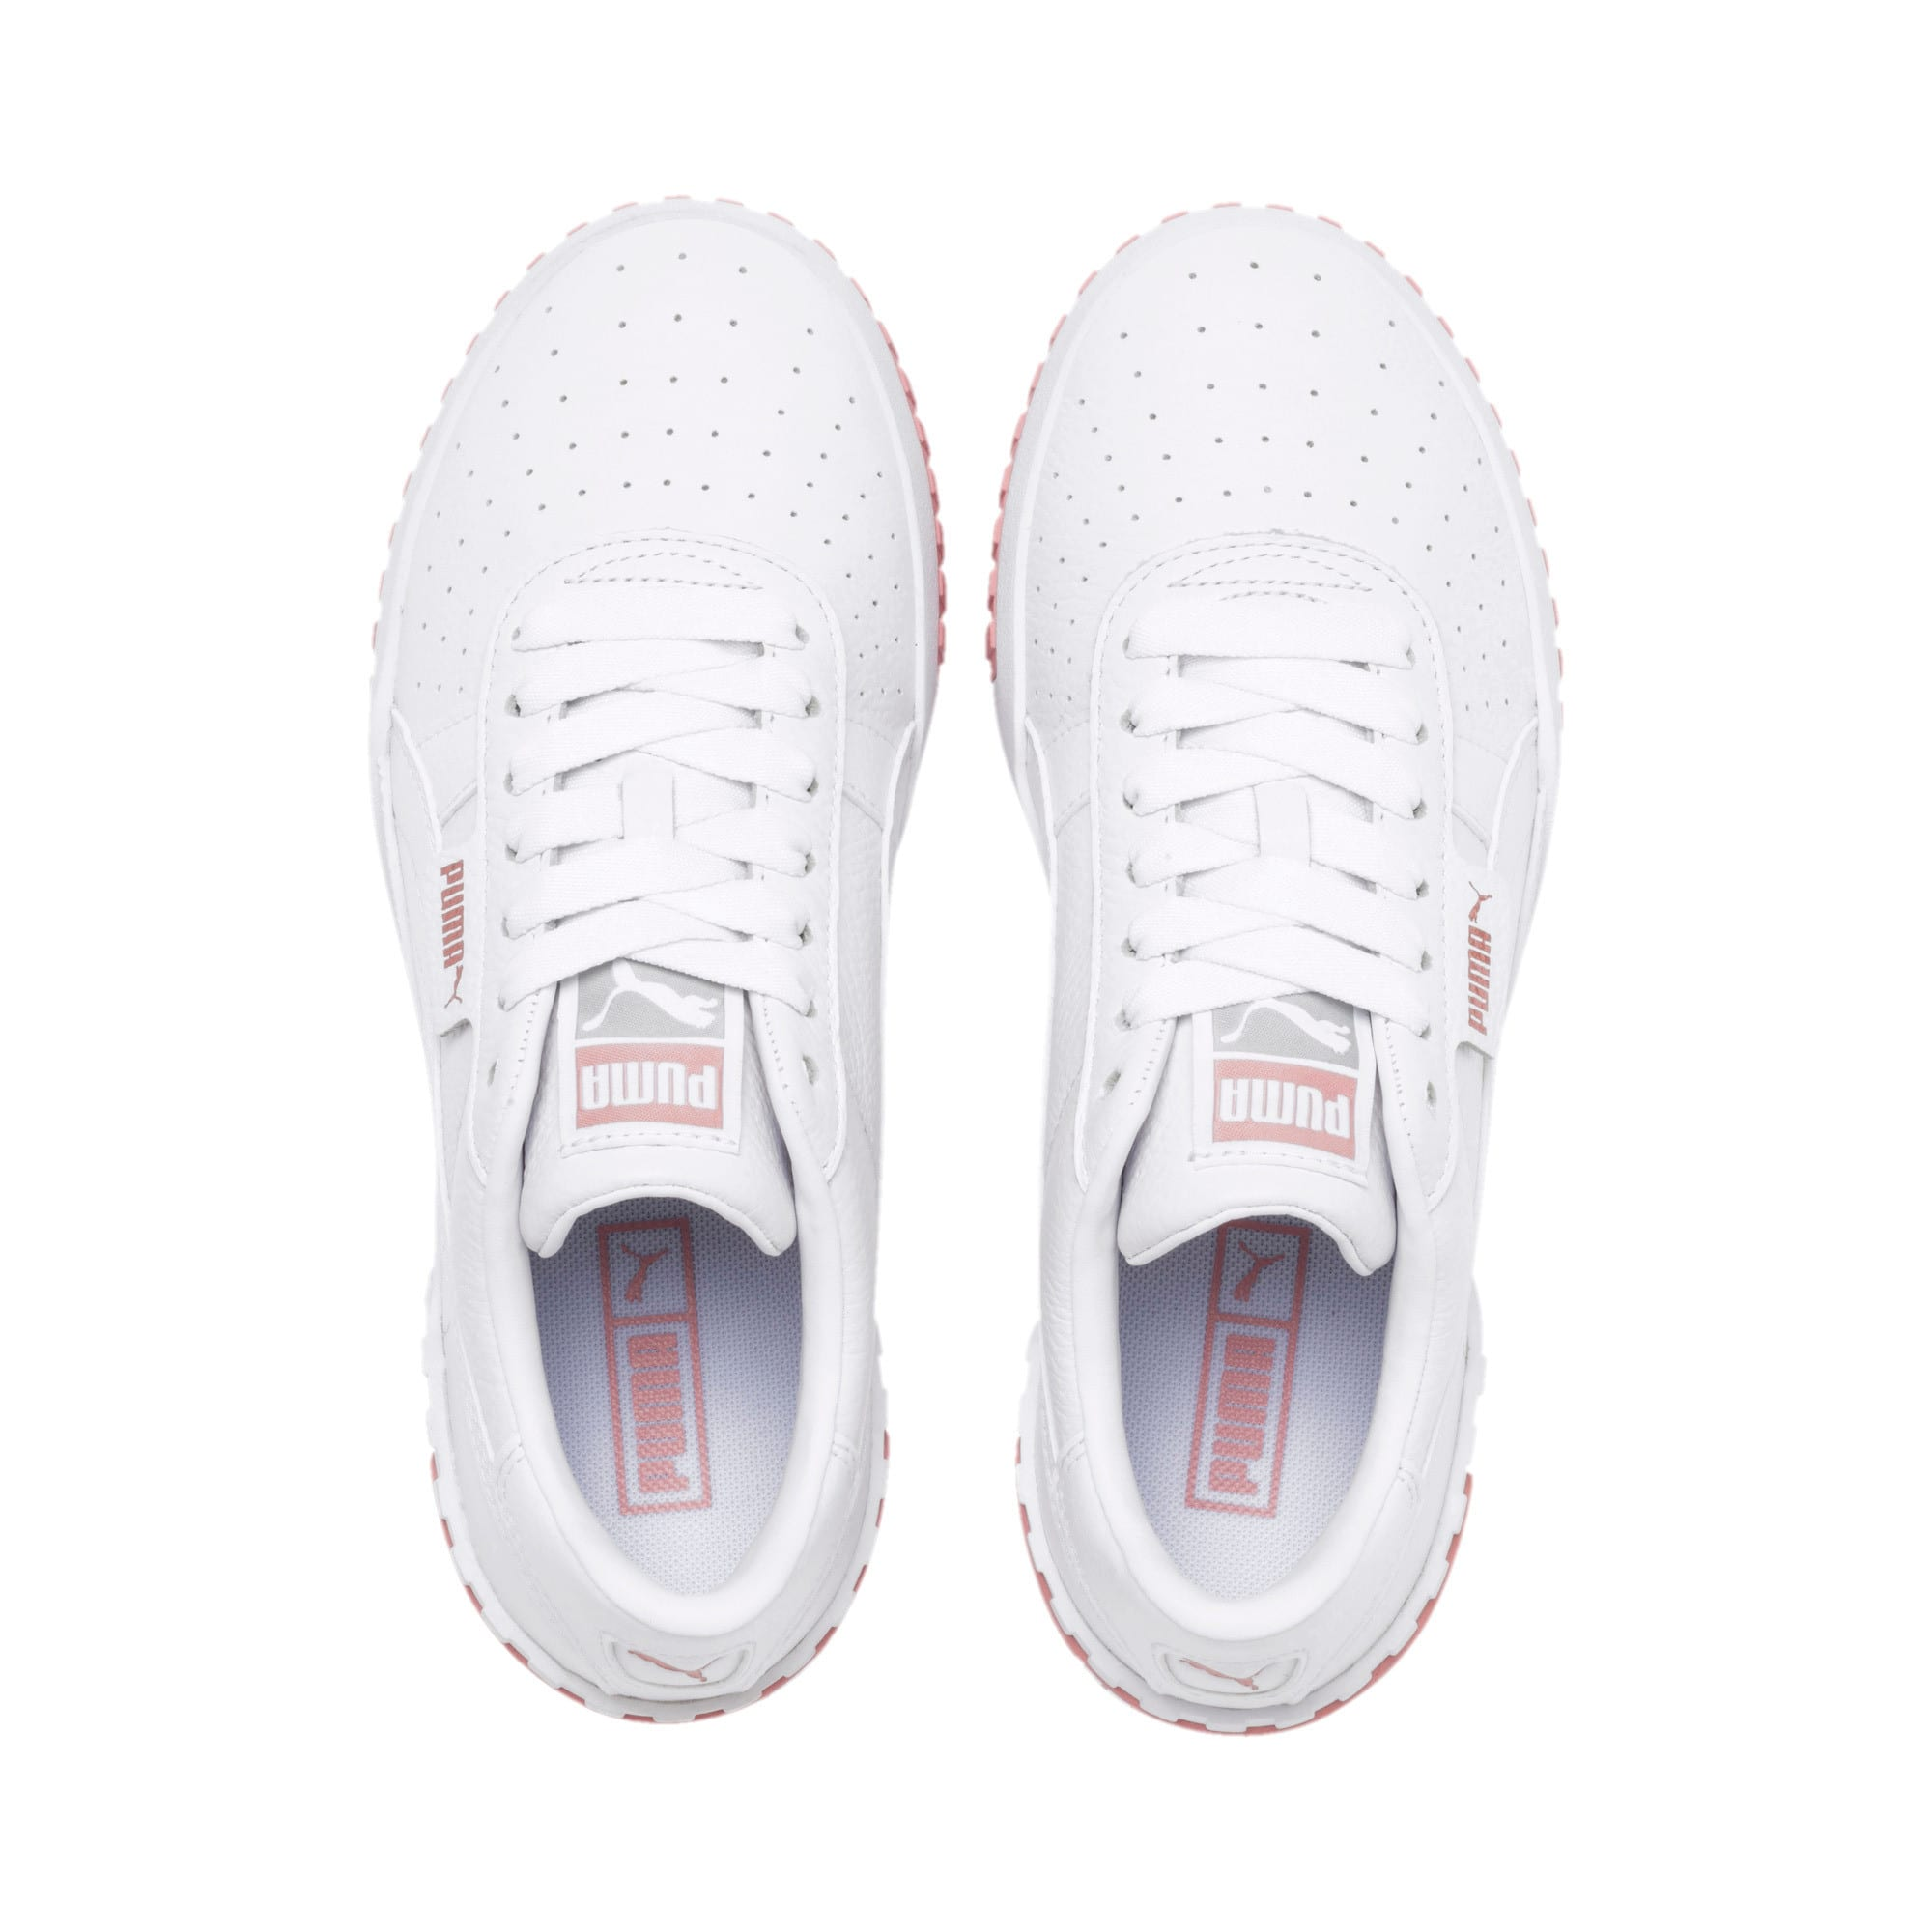 Thumbnail 4 of Cali Women's Trainers, Puma White-Rose Gold, medium-IND